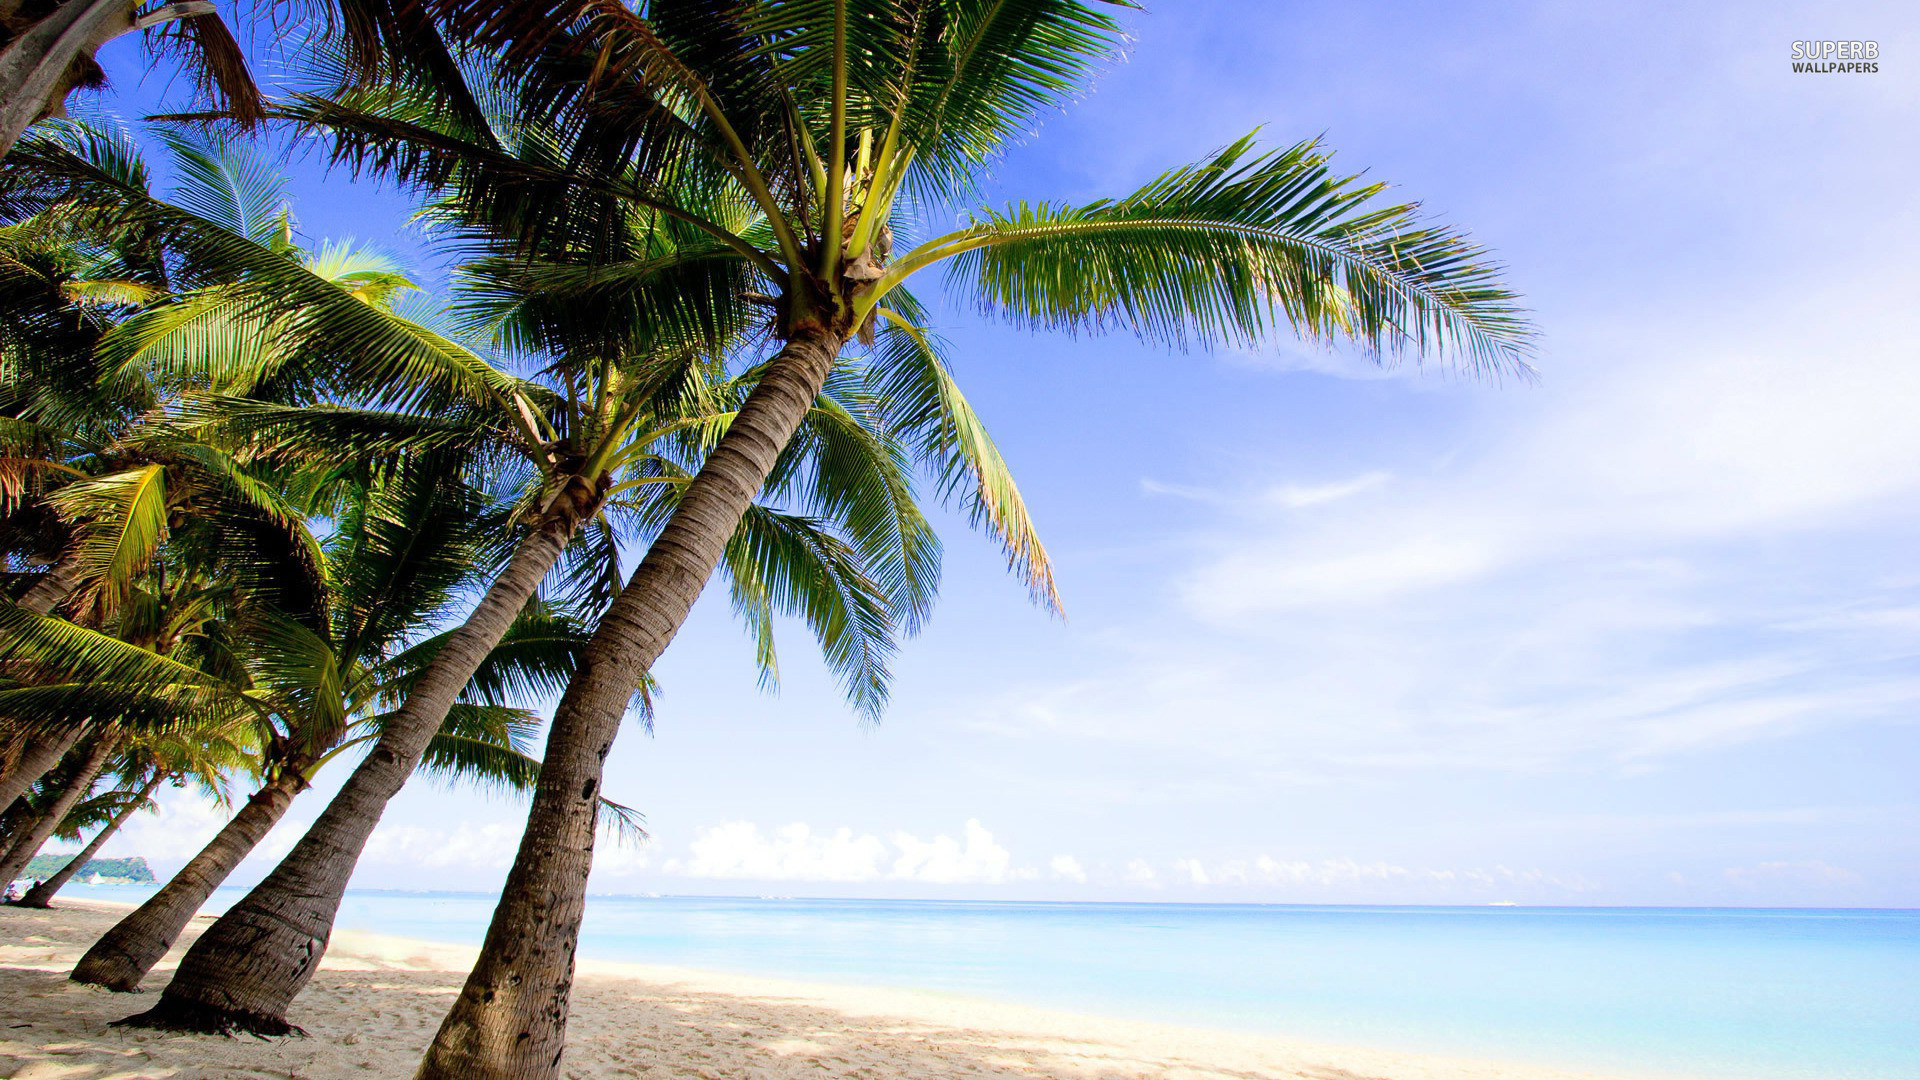 Palm Trees On The Beach: Palm Tree Beach Wallpaper ·① WallpaperTag